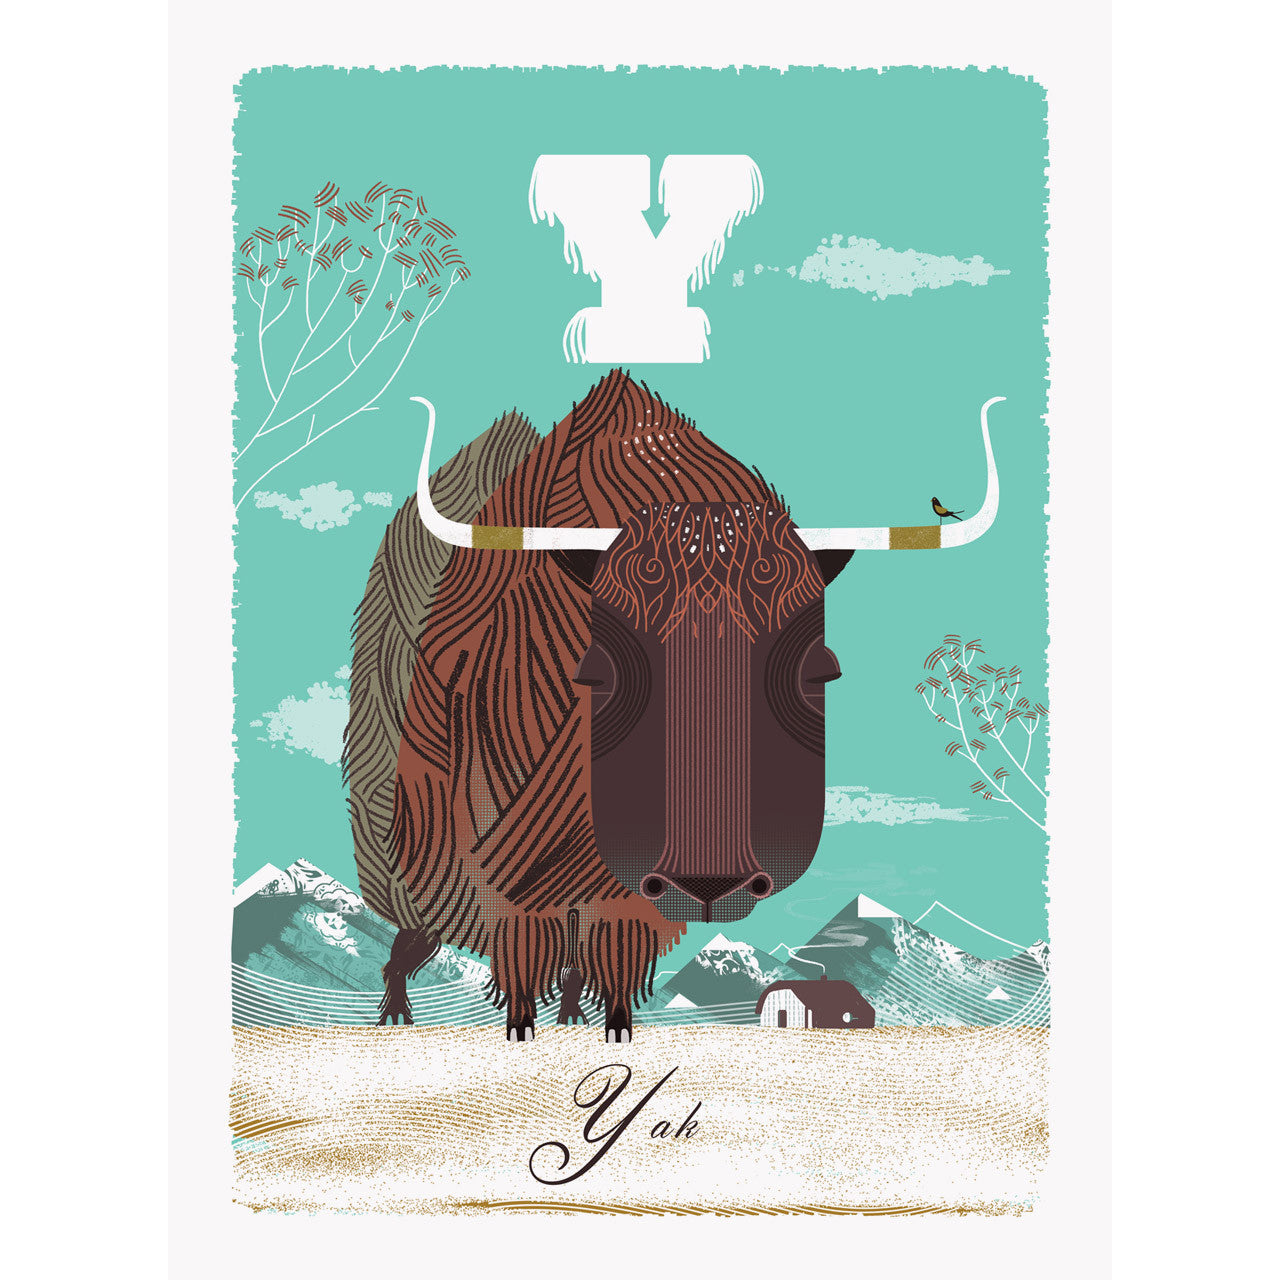 Yak print by Graham Carter